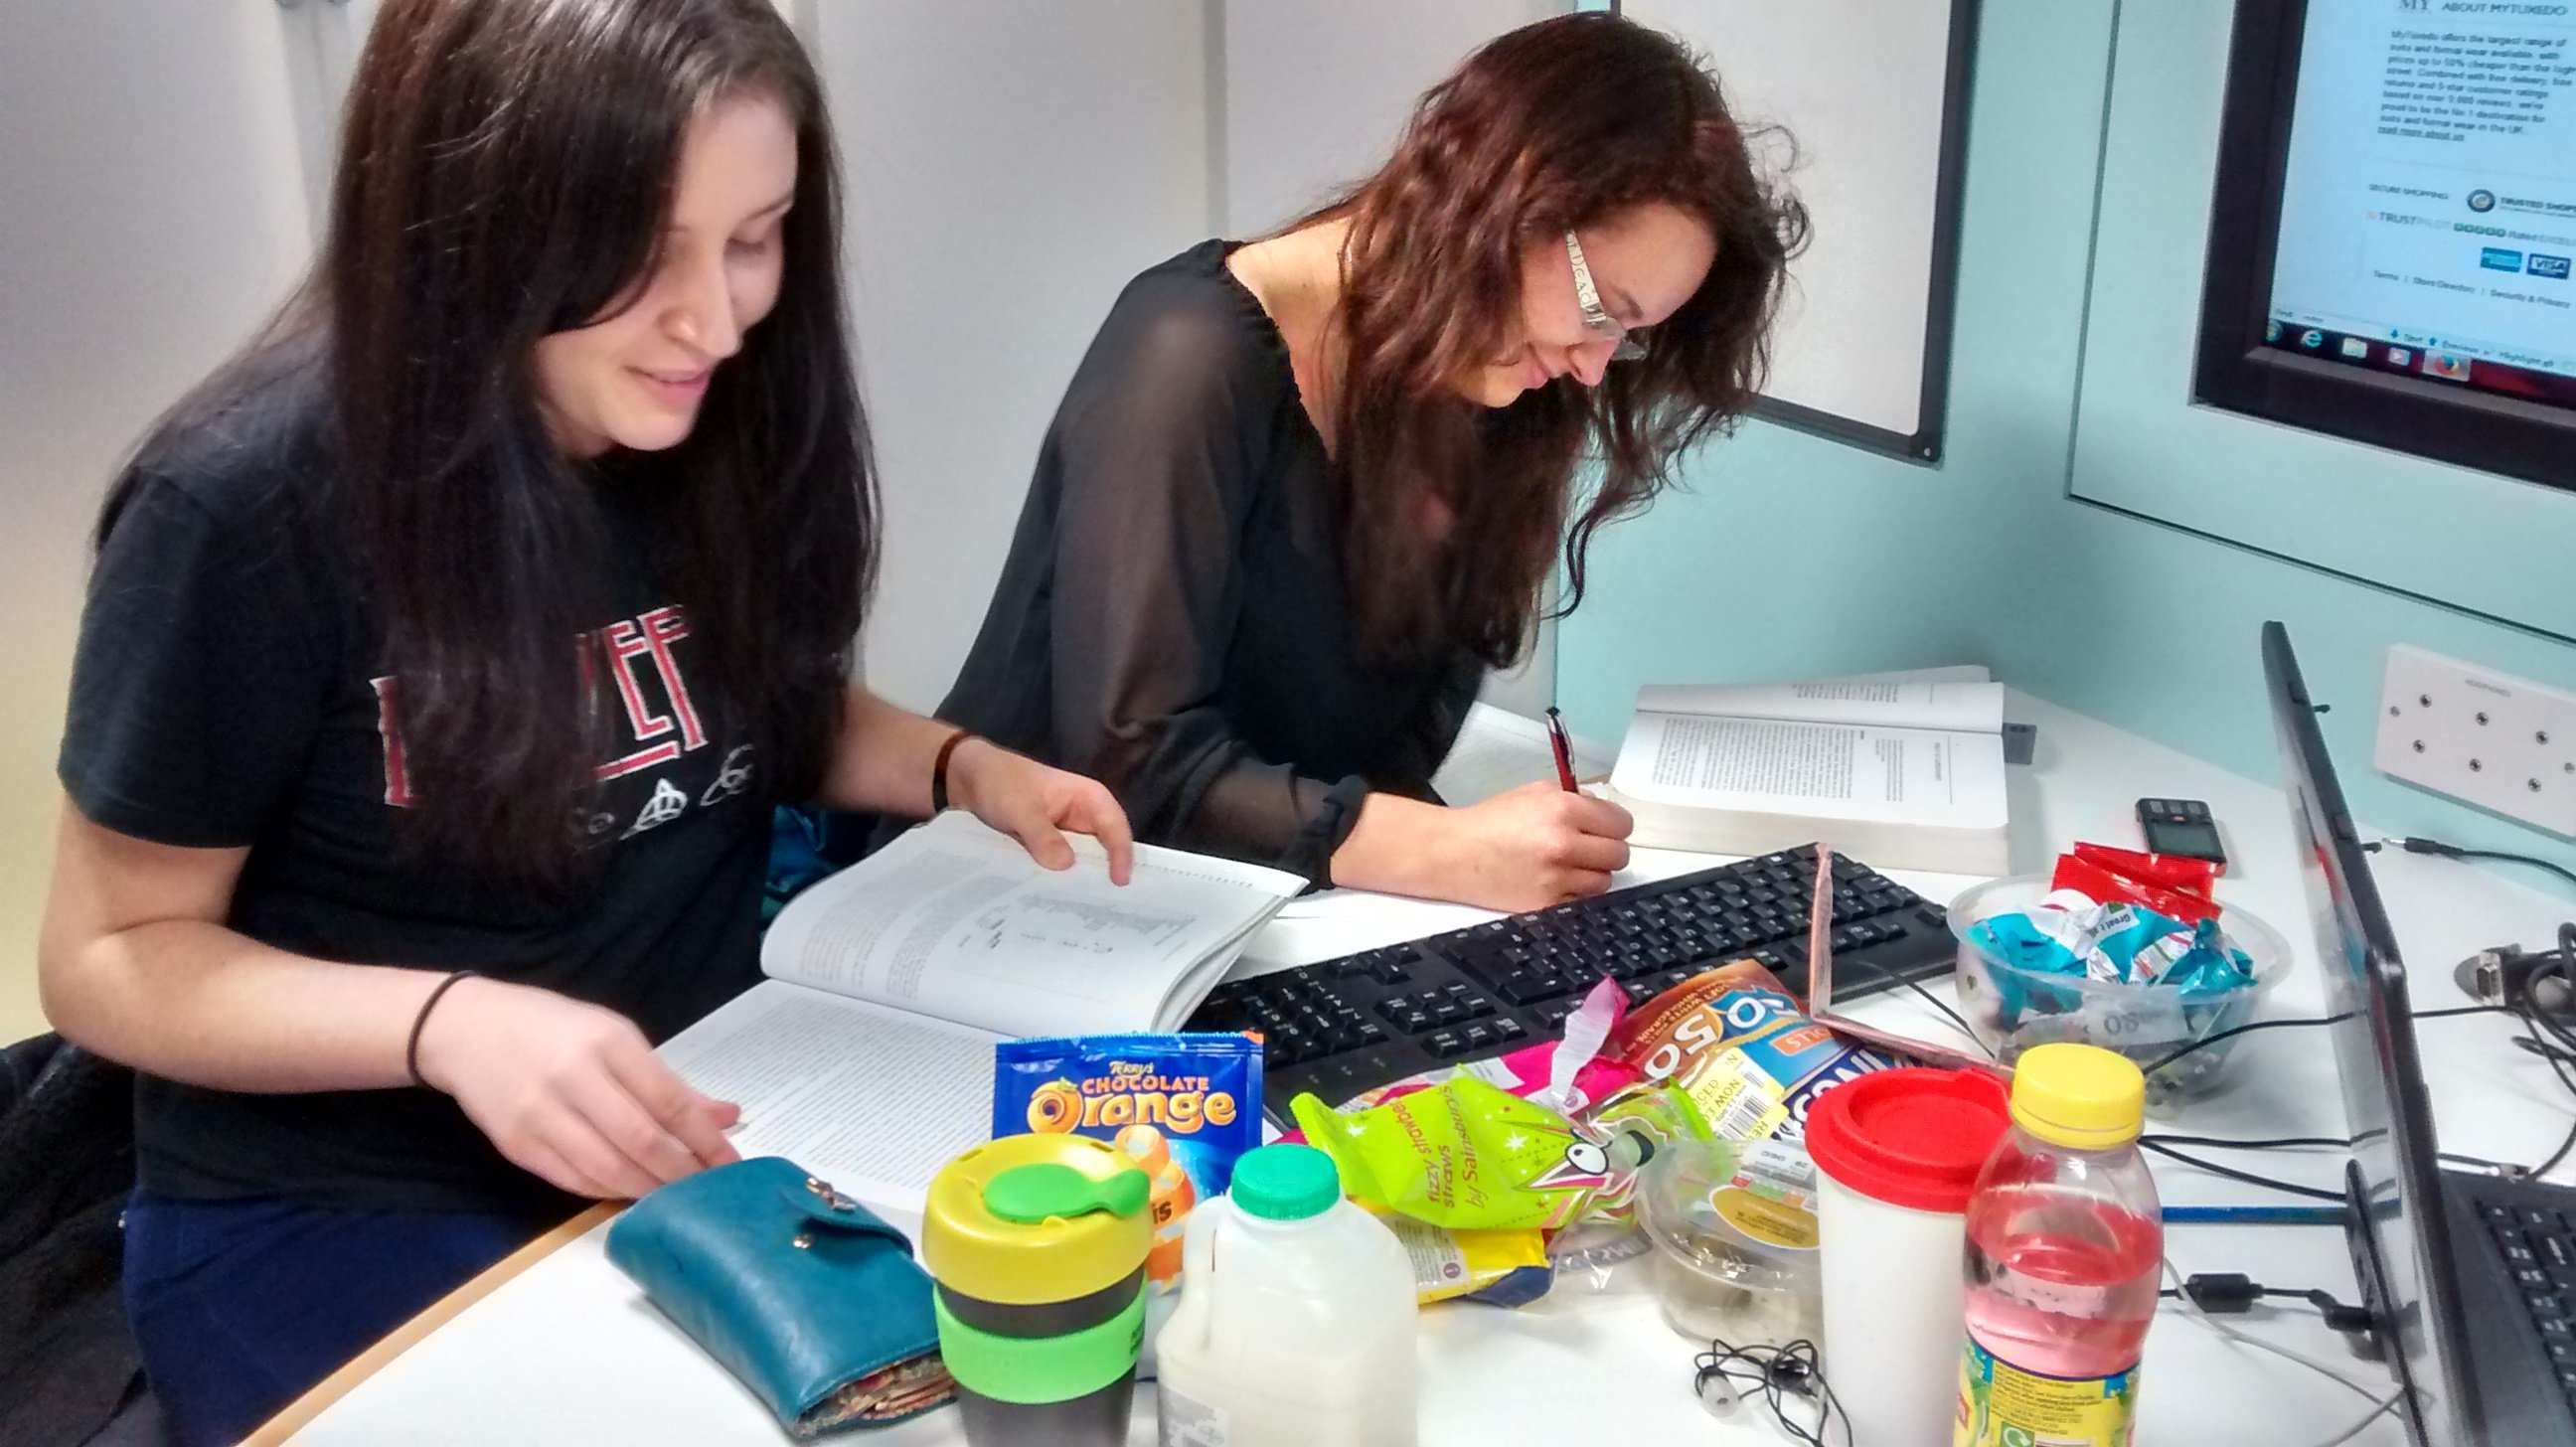 Victoria and Iona revise the way we all should... drowned in snacks.